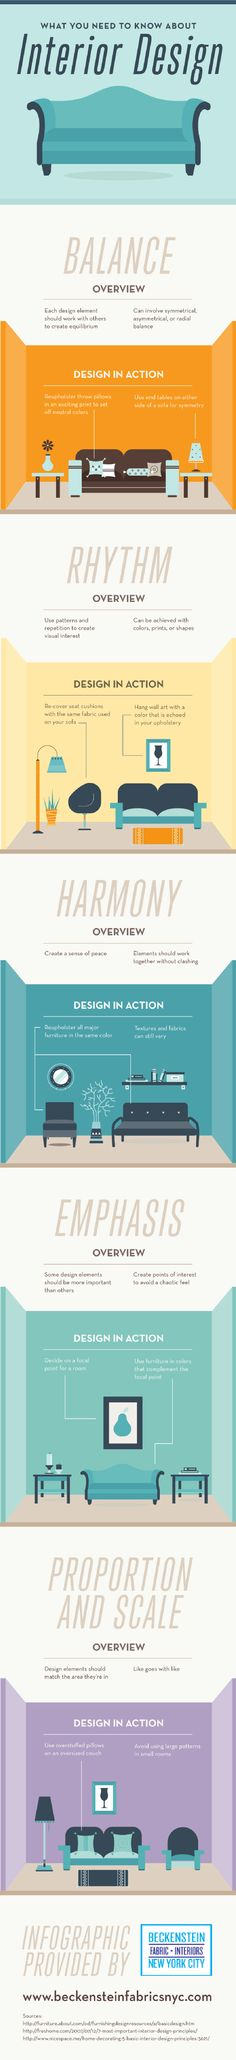 What You Need To Know About Interior Design [INFOGRAPHIC]